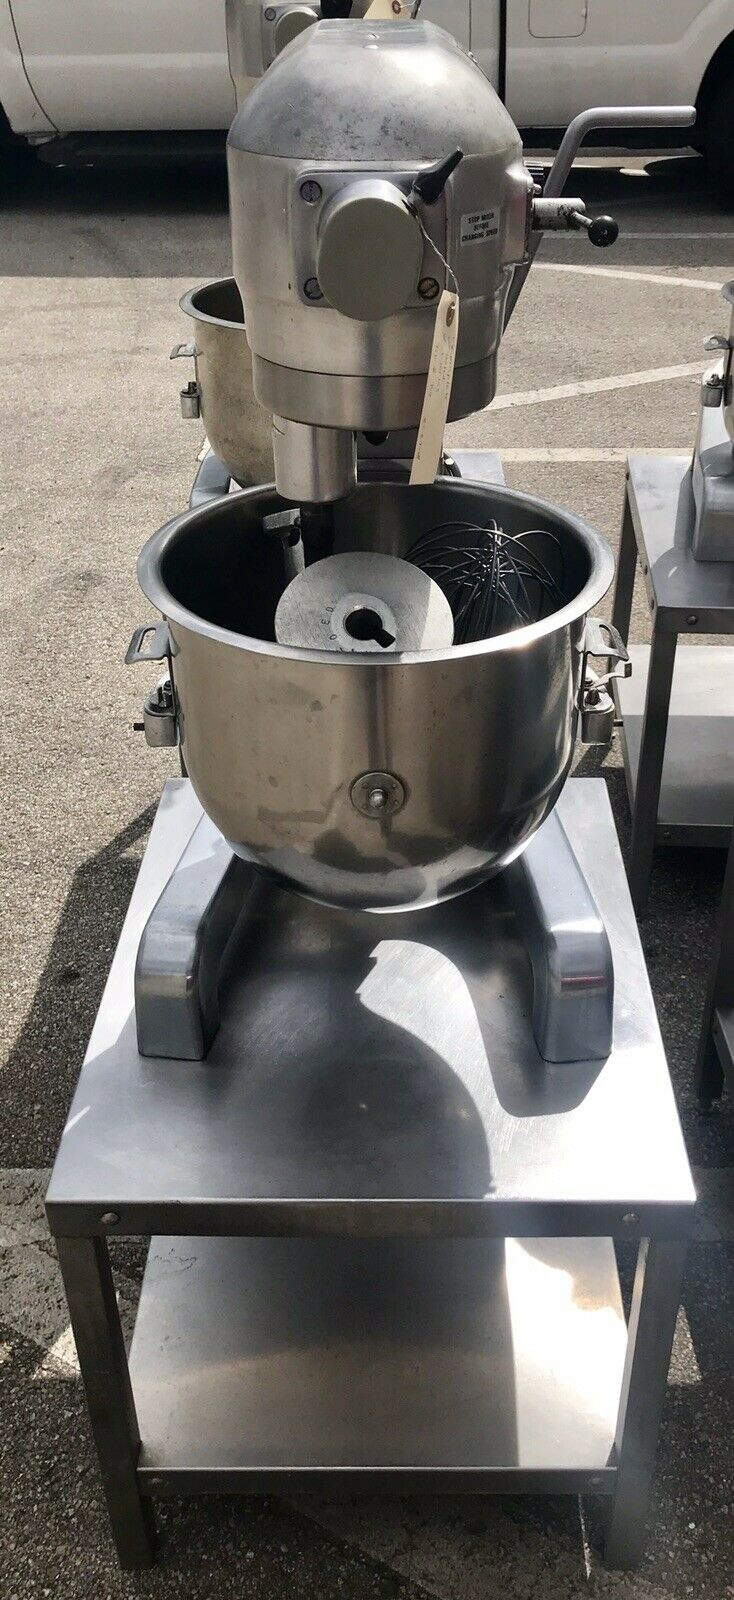 Hobart A-200T Commercial 20 QT Bakery Baking Dough Mixers with Bowl Whisk Paddle